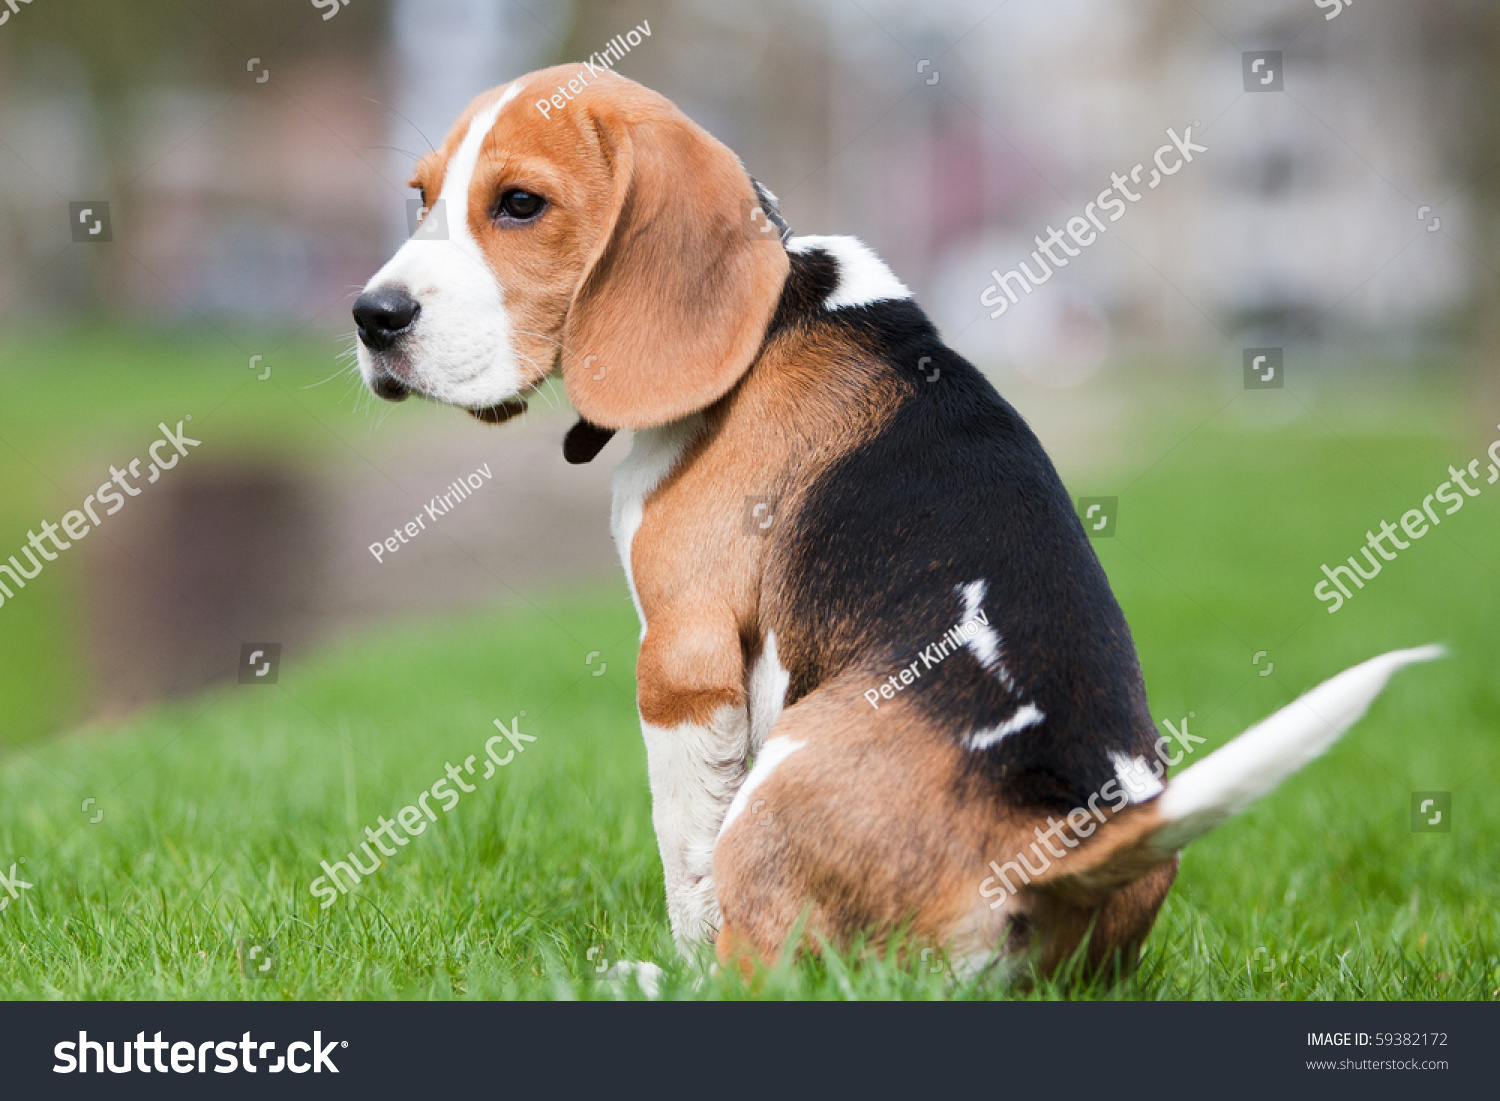 Sad Beagle Puppy Small dog, beagle puppy sitting and looking sad on ...